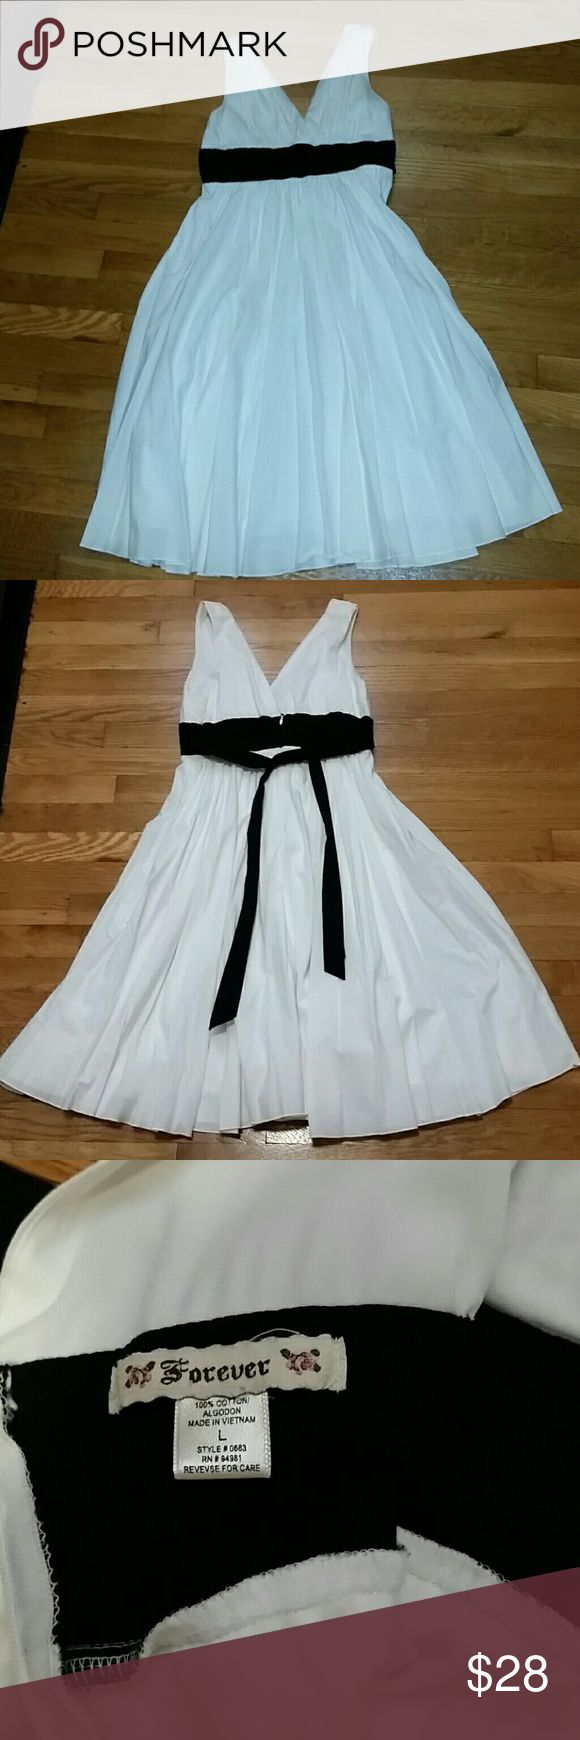 Grecian style tea dress. This beautiful white dress is perfect for an English High Tea.    Thick straps create a tasteful v neck in the front and the back.  The black empire waist can be adjusted to fit your individual size. The skirt is flowing and comes below the knee. Forever 21 Dresses Midi